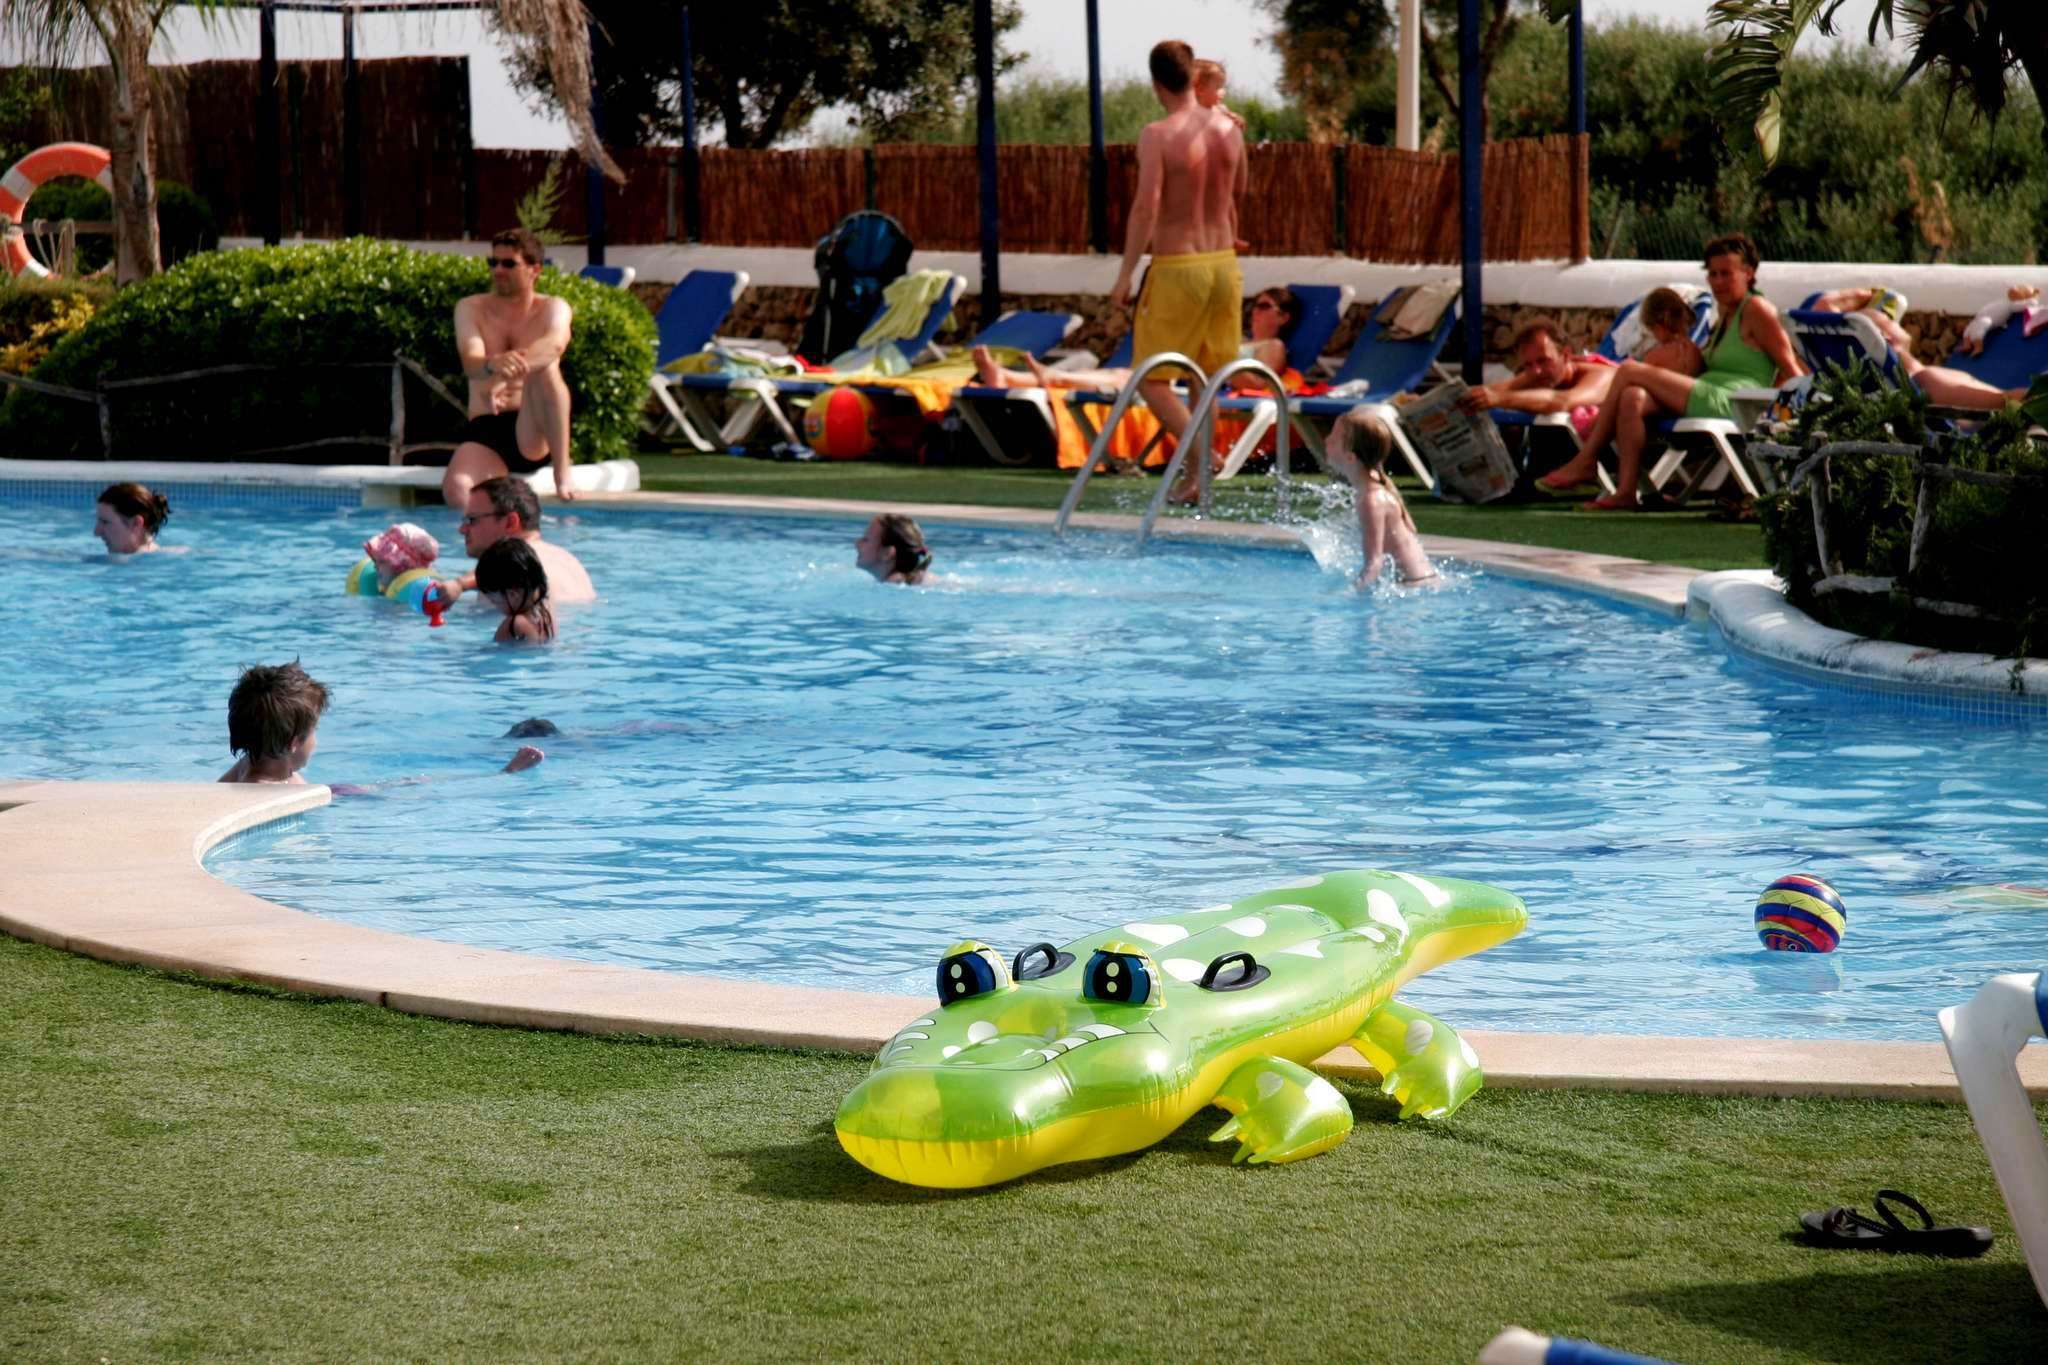 Fotos de la piscina infantil del royal son bou family club for Fotos en la piscina